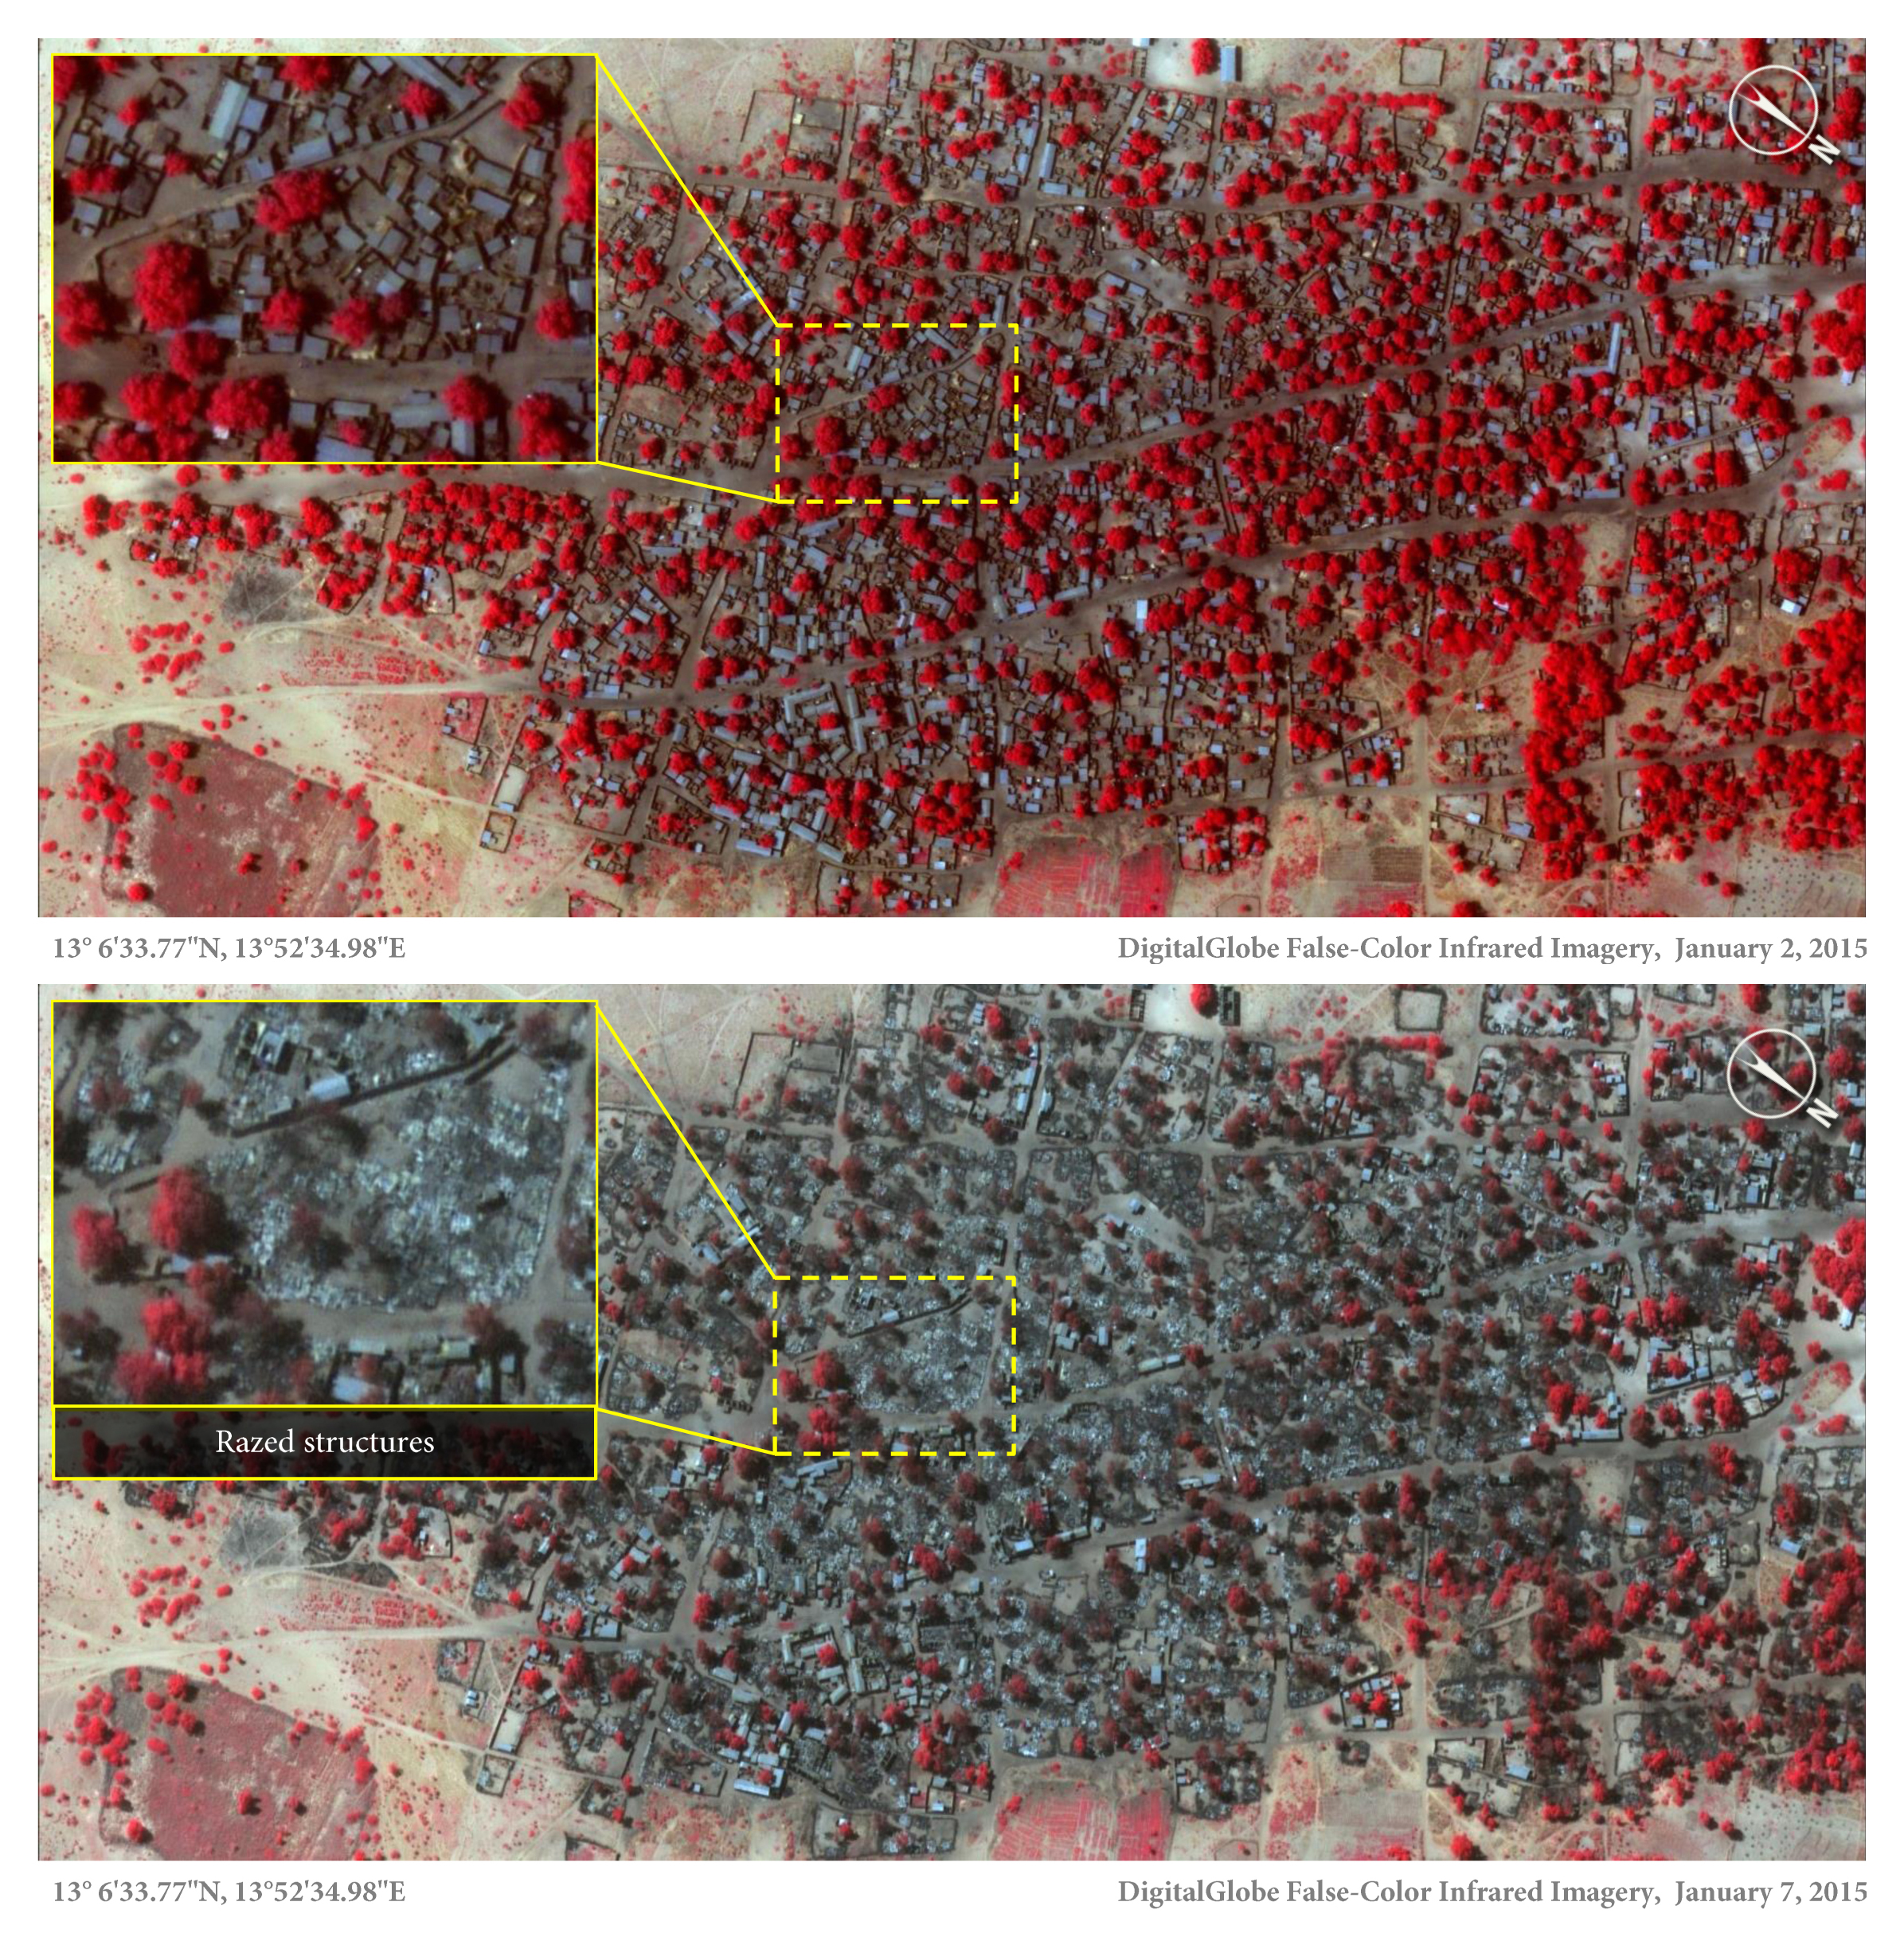 Satellite image of the village of Doro Baga (aka Doro Gowon) in north-eastern Nigeria taken on 2 Jan 2015. Image shows an example of the densely packed structures and tree cover. Satellite image 2, taken on 7 Jan 2015, shows almost all of the structures razed. The inset demonstrates the level of destruction of most structures in the town. The red areas indicate healthy vegetation.